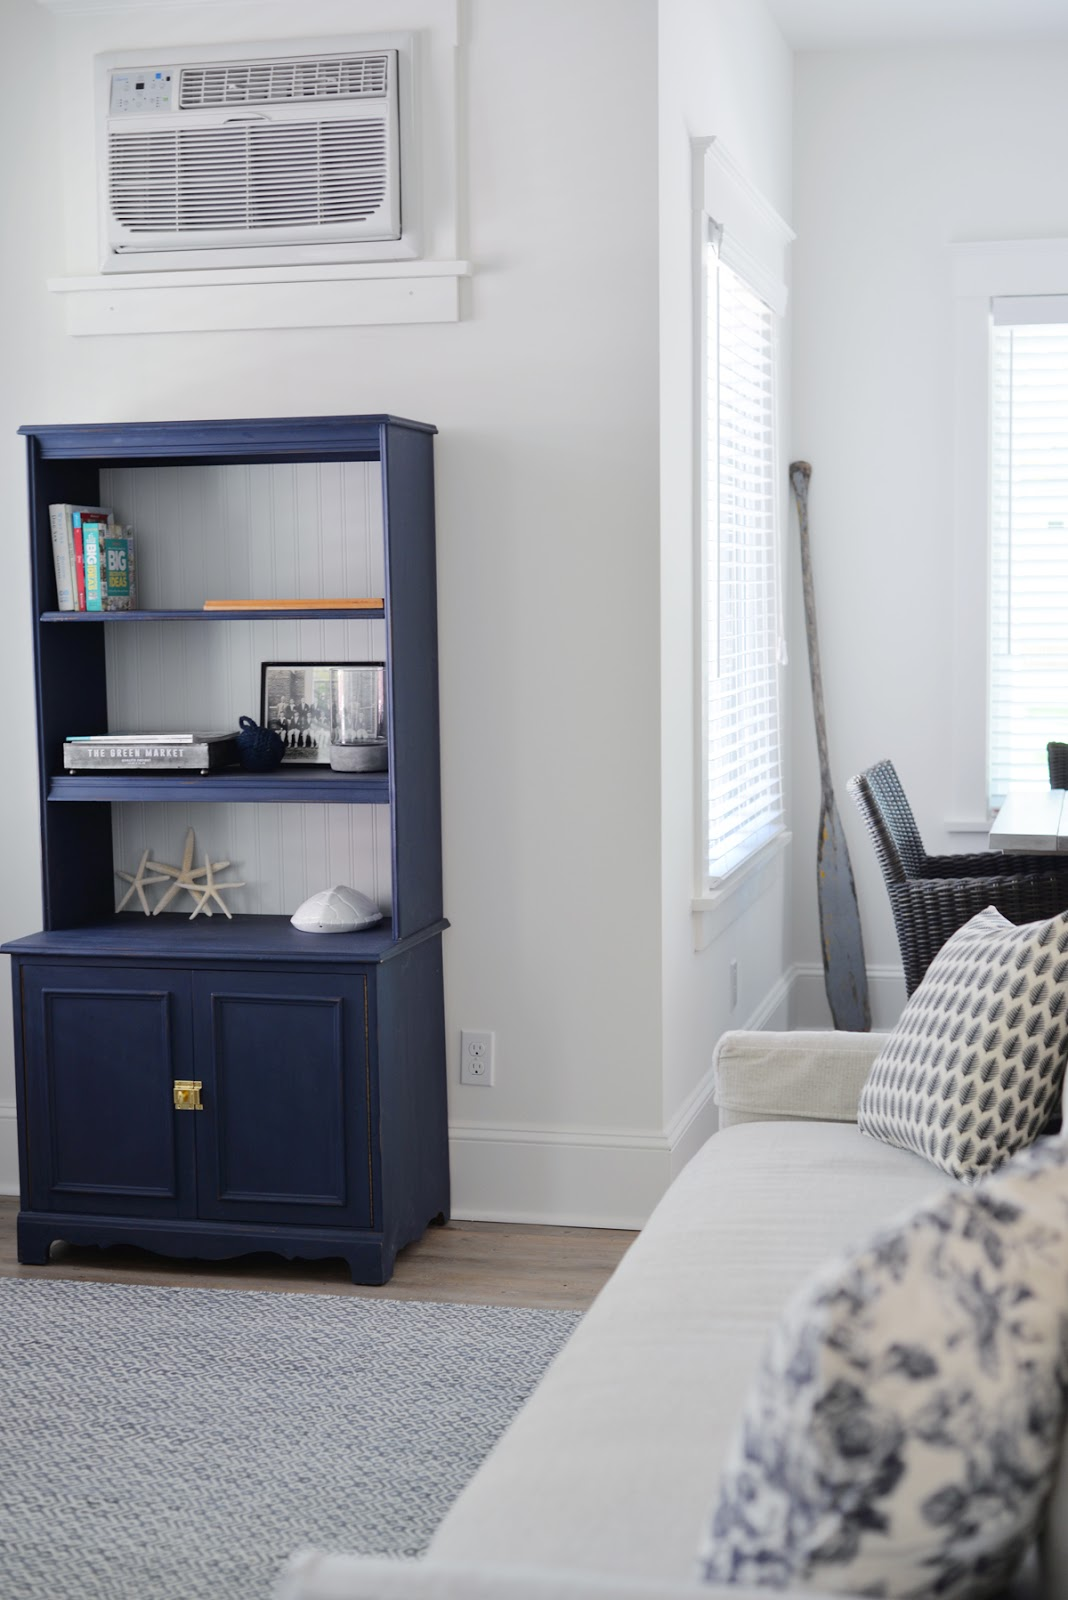 Ramblingrenovators.ca | Navy blue chalk paint bookcase, modern country style cottage